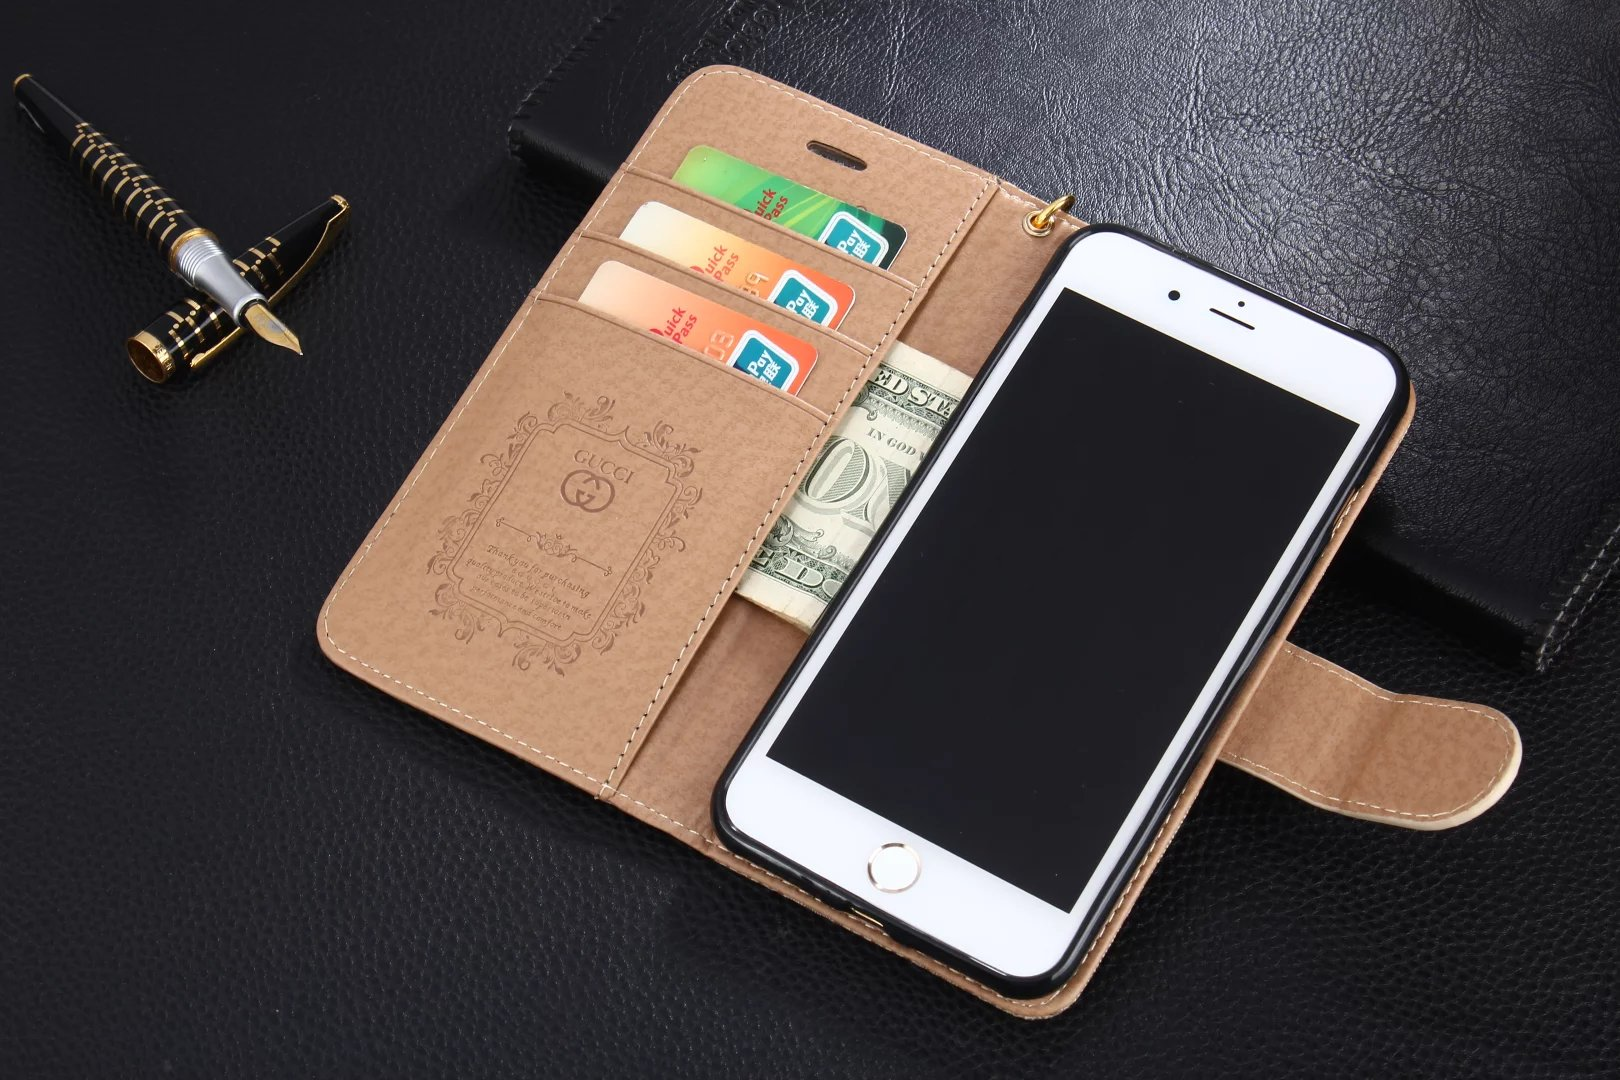 galaxy s6 edge credit card case best cases samsung galaxy s6 edge fashion Galaxy S6 edge case samsung galaxy s6 edge armor case samsung s6 edge wireless charging case flip case galaxy s6 edge glaxey s6 edge s6 edge cell phone accessories samsung galaxy s6 edge